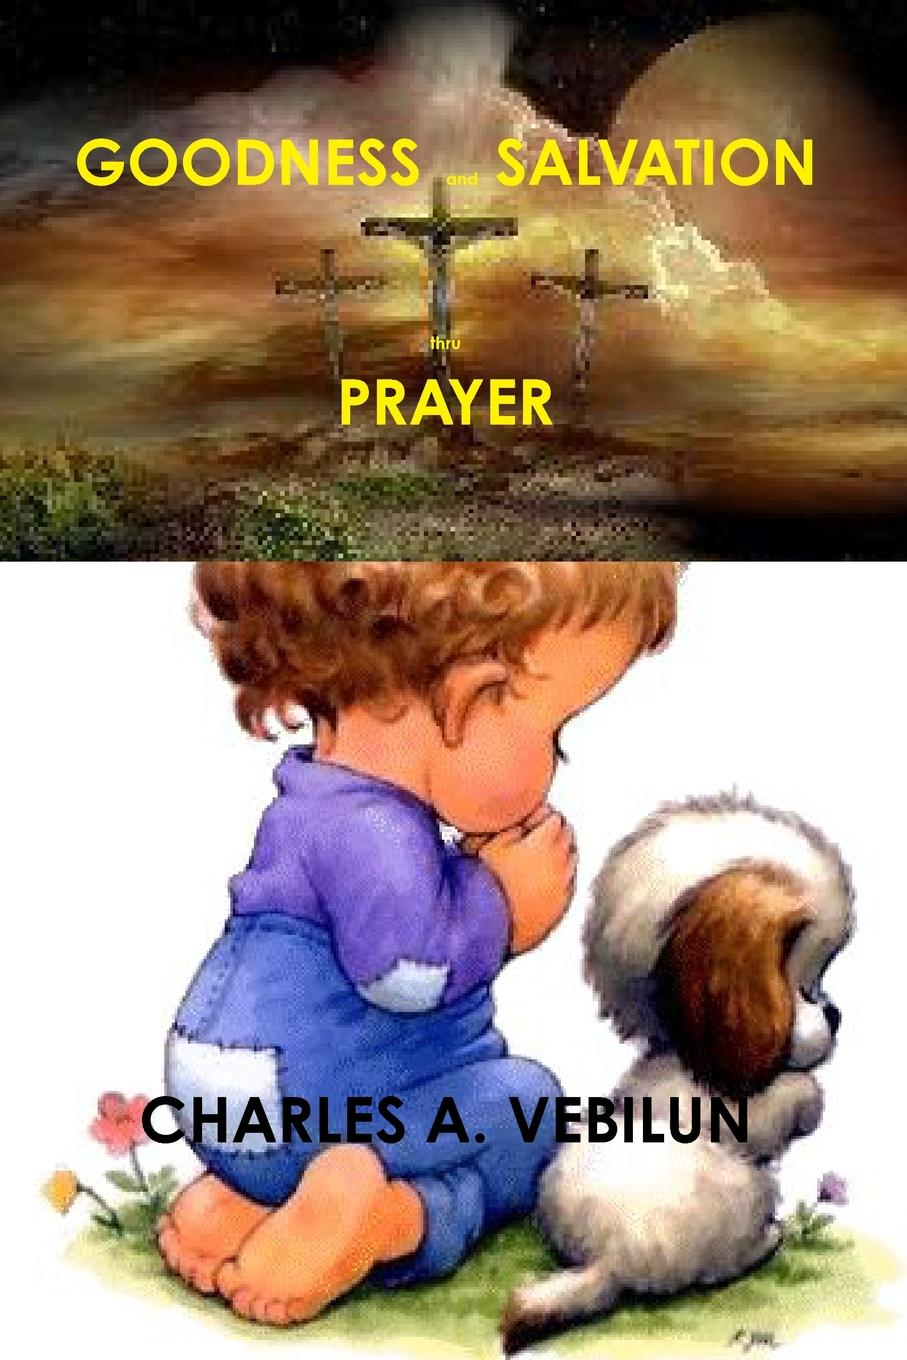 CHARLES A. VEBILUN GOODNESS and SALVATION thru PRAYER william law the spirit of prayer or the soul rising out of the vanity of time into the riches of eternity